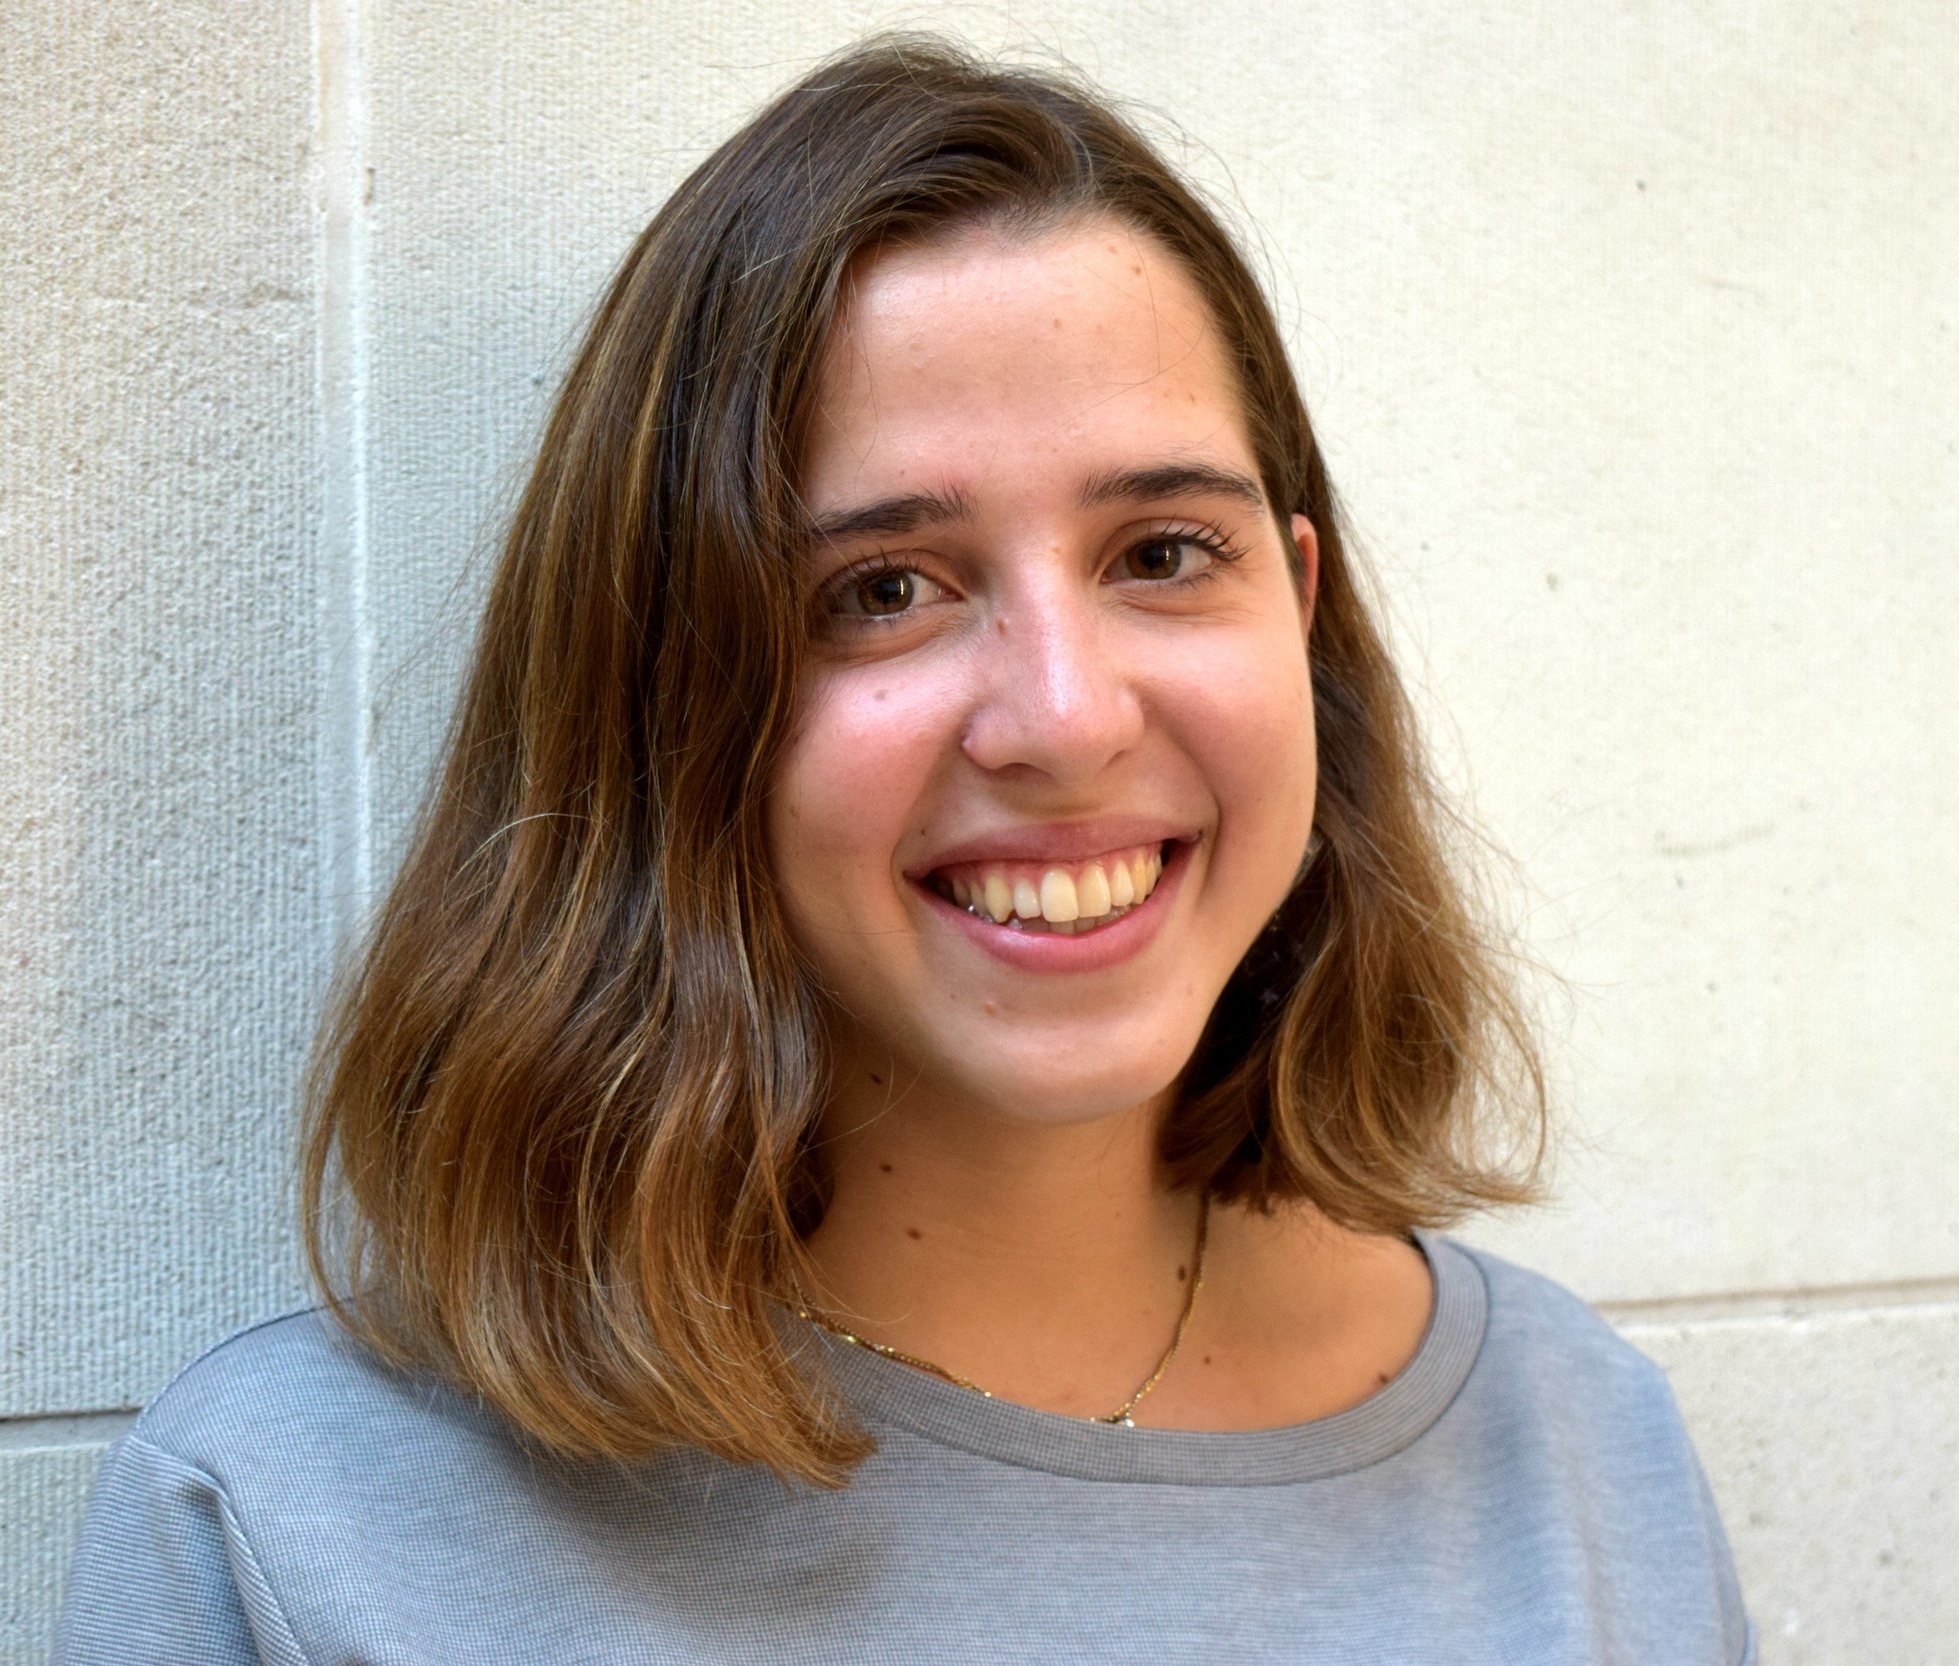 SECRETARY - Ludovica Vecchio - I am an LLB finalist at SOAS and Secretary of the SOAS Law Society. It is my second year in this position due to my eagerness to be part of this team. I have hence increased my competence to keep students up to date with all the Latest Opportunities as well as to liaise between them and the Committee and law firms and other potential partners. I am mostly concerned with the bureaucracy of the Society management but as a member of the Executive Committee, I also take part in the decision-making process.This year I will also be President of the SOAS Asylum and Immigration Law Clinic (AILC), to provide pro bono legal advice to asylum seekers in detention, and maintain my involvement in the SOAS Law Journal.However, the best part of my resume is my tiramisu which has an even better reputation than my own. I am committed to serve it at every Law Society event, so there will be an extra perk in attending.I am marked by a sympathetic personality and willing to meet new people and engage with students to further improve their experience at SOAS.